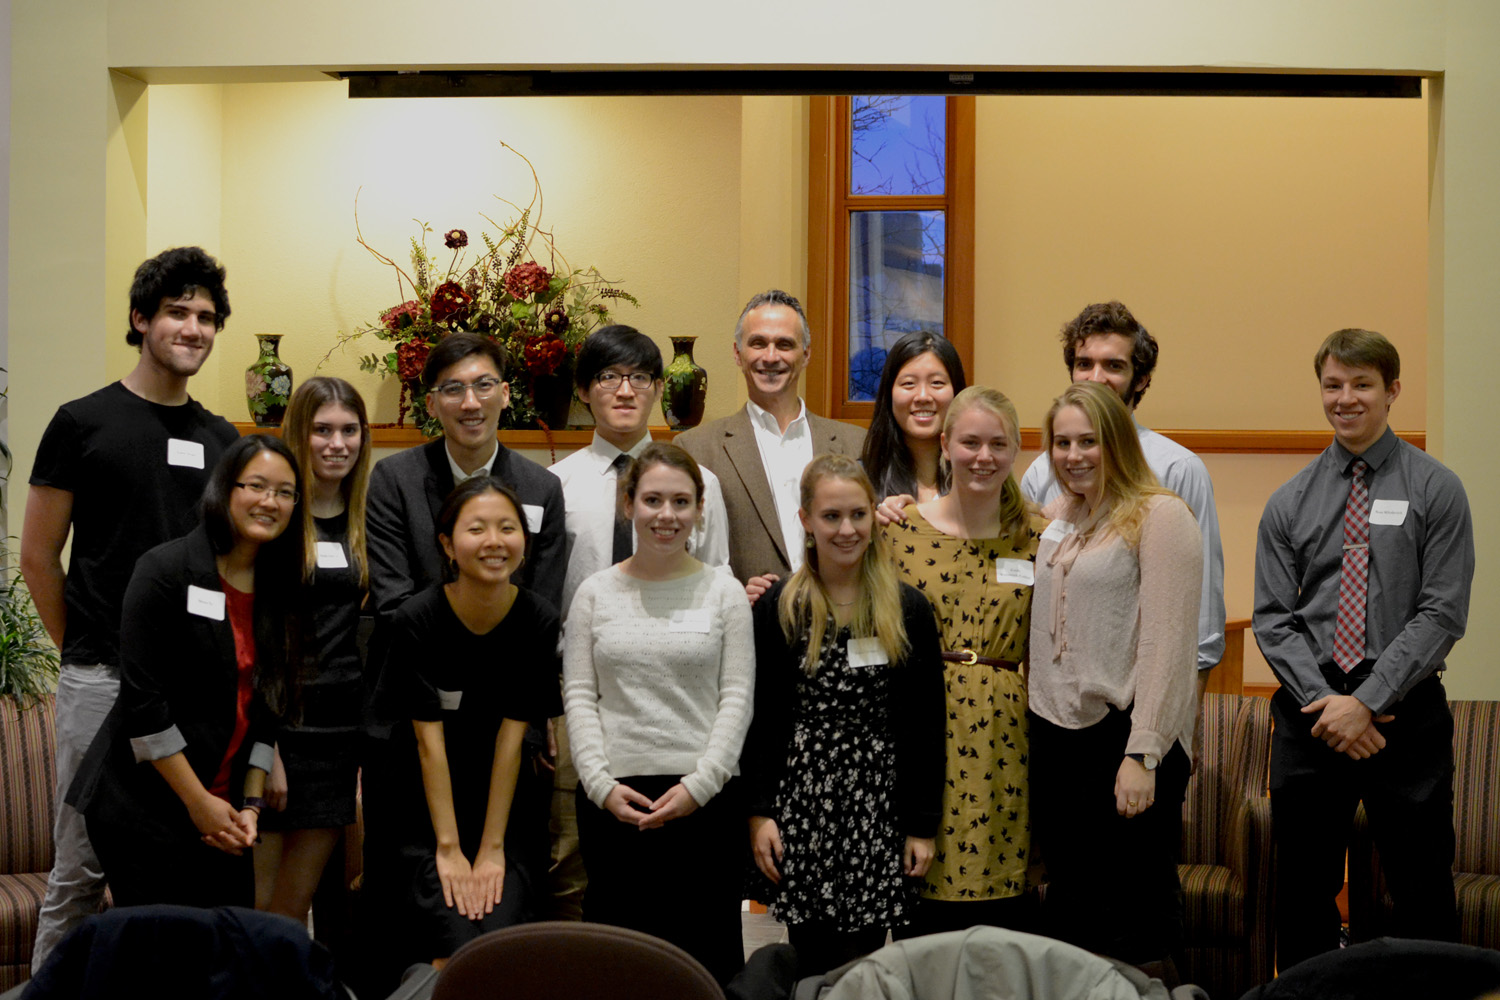 Fifteen students were inducted into the Phi Beta Kappa honors society on December 2nd. These students were elected into the society based on their academic excellence demonstrated within their respective majors.